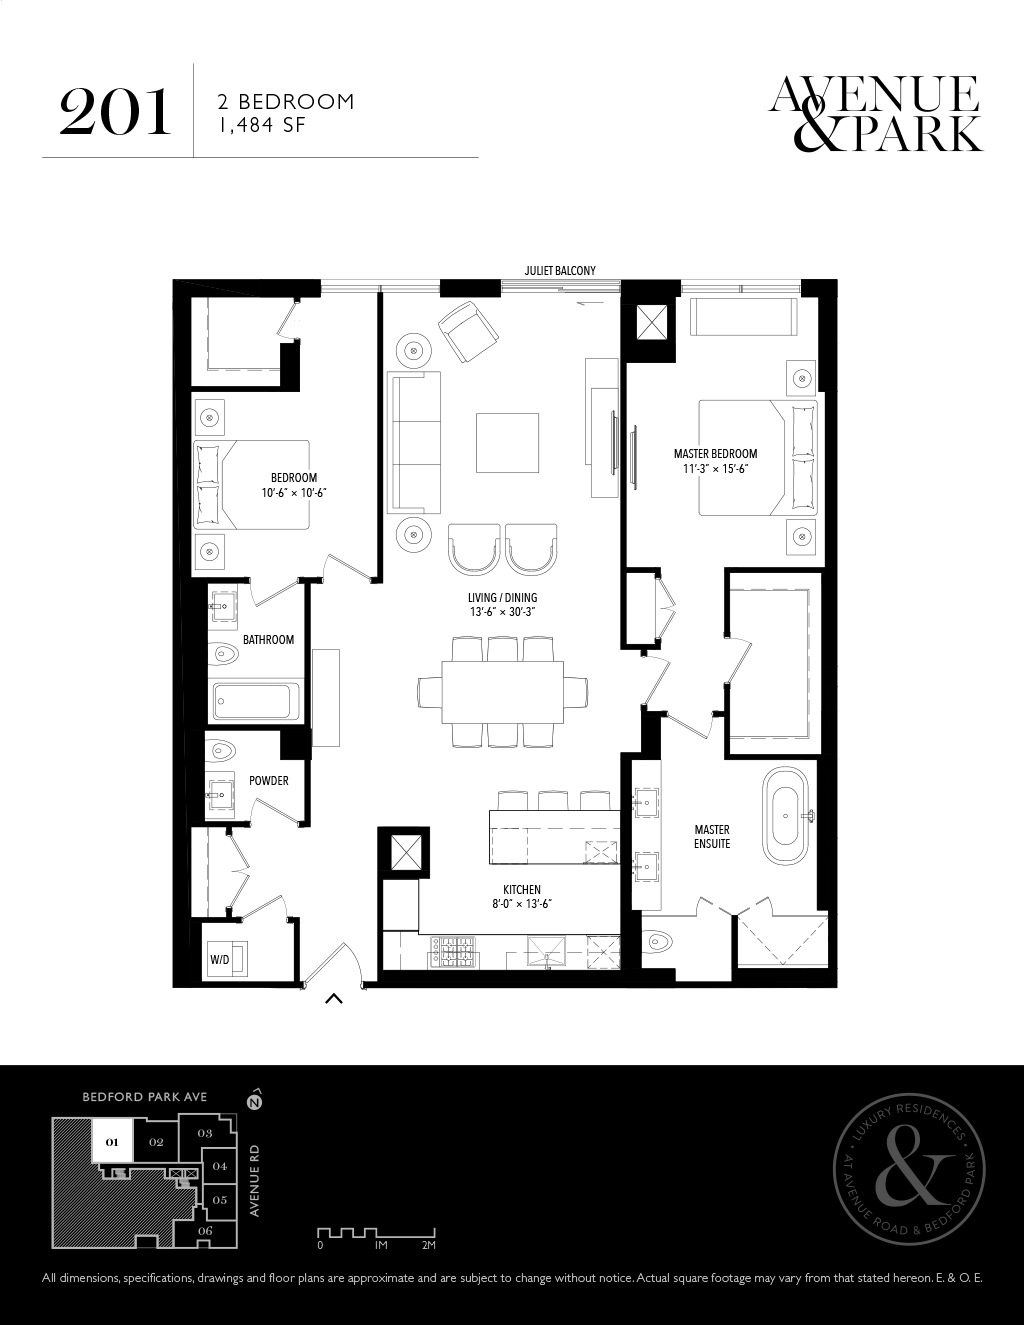 1580 AVENUE - FLOORPLANS TWO BED 1484 SF - CONTACT YOSSI KAPLAN